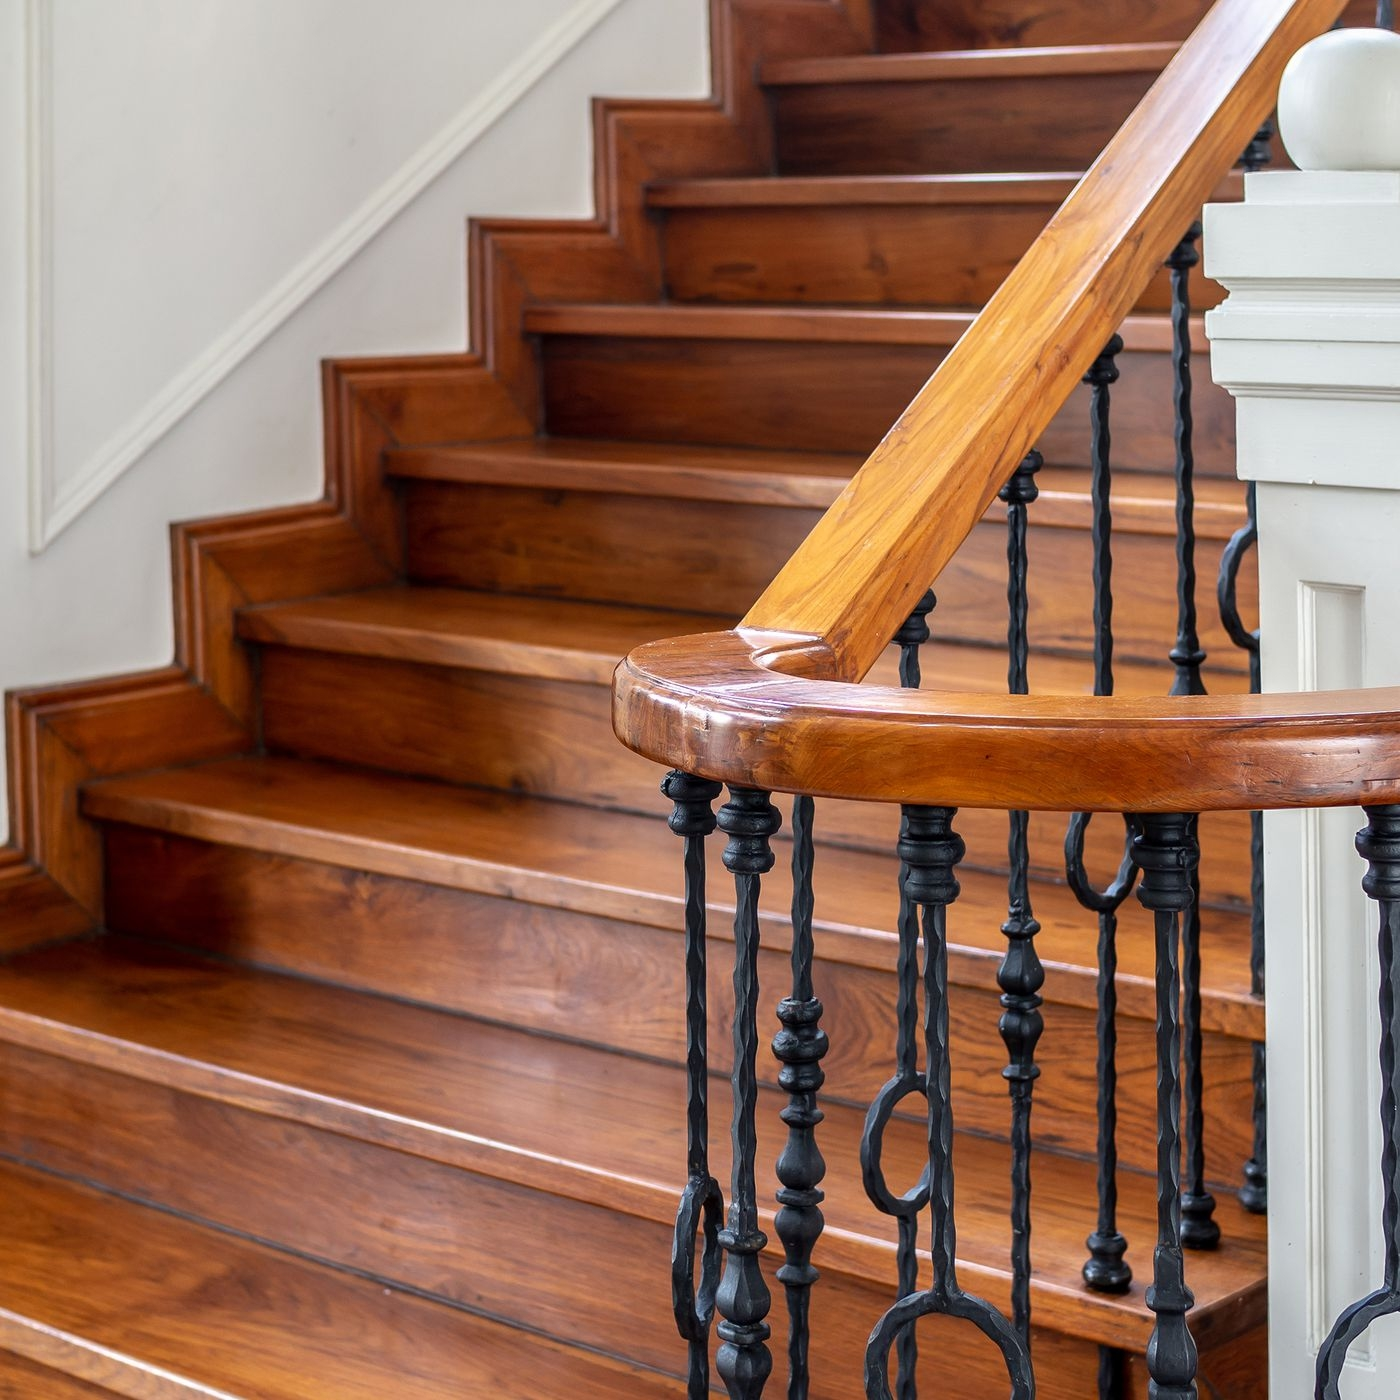 How To Fix Squeaky Stairs This Old House   Carpet On Wooden Stairs   Victorian   Combined Wood   Jute   Dark   Hall